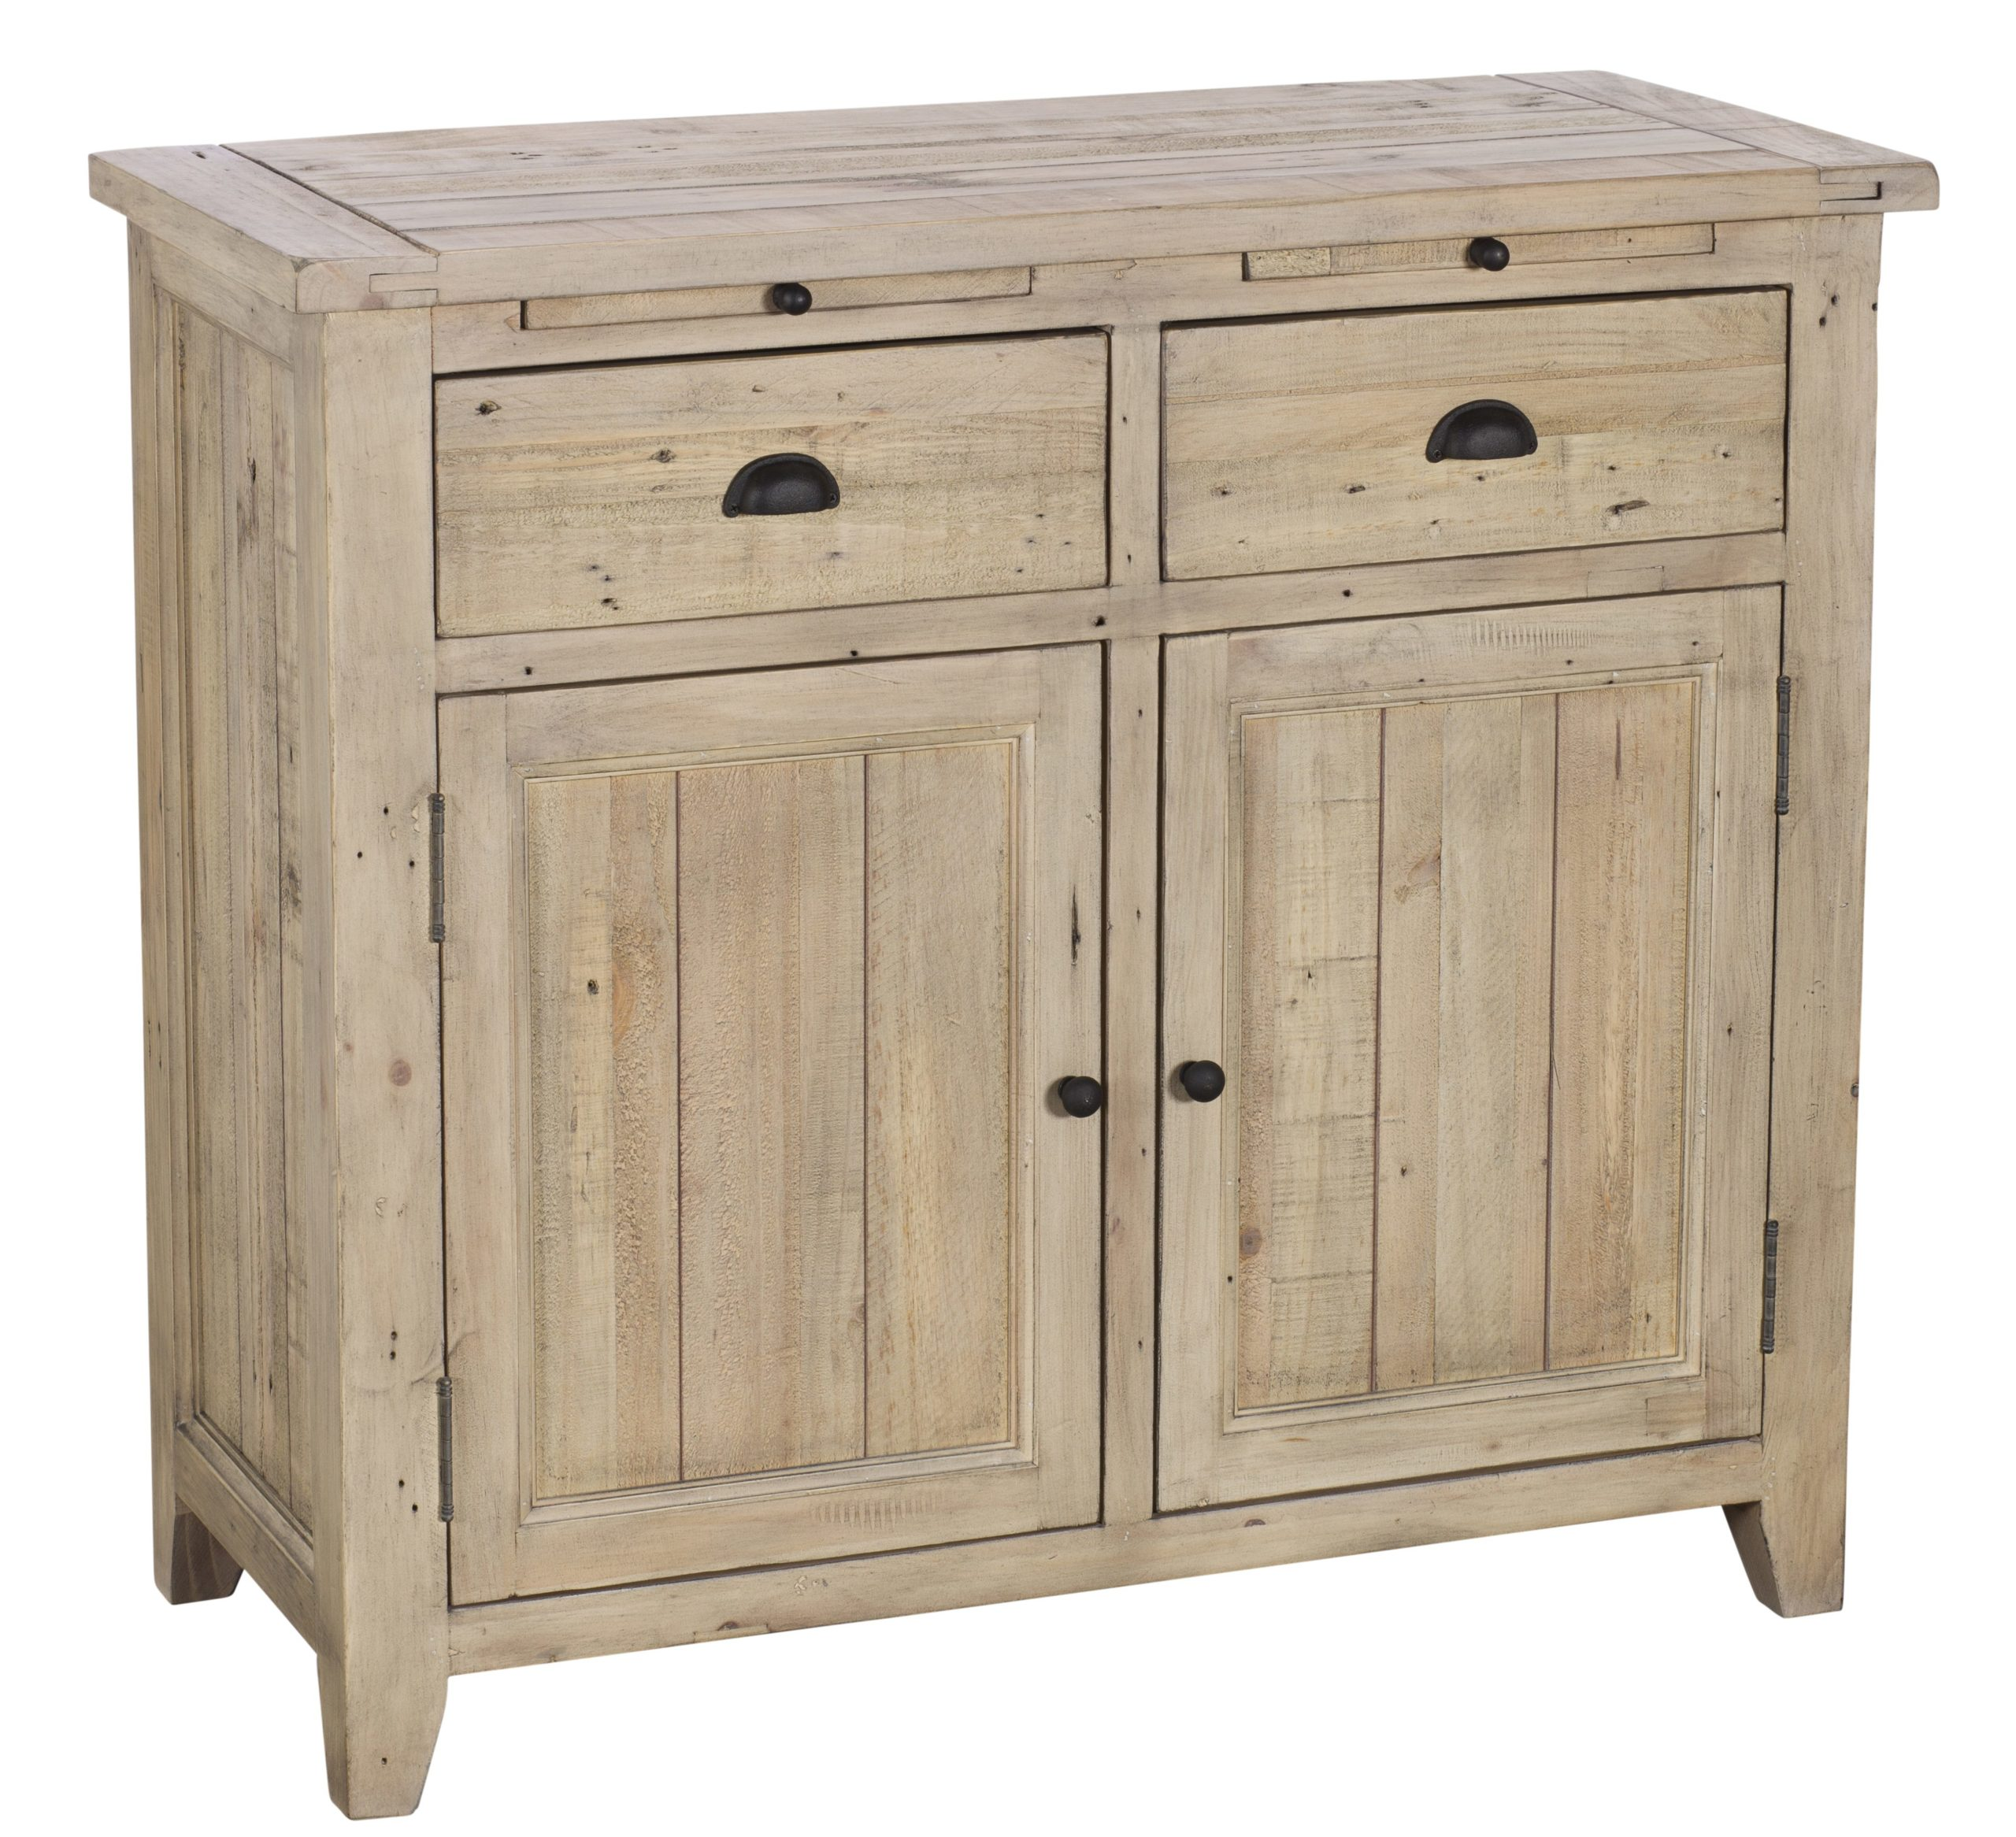 Verona Narrow Sideboard VT08 1 e1573078116808 scaled